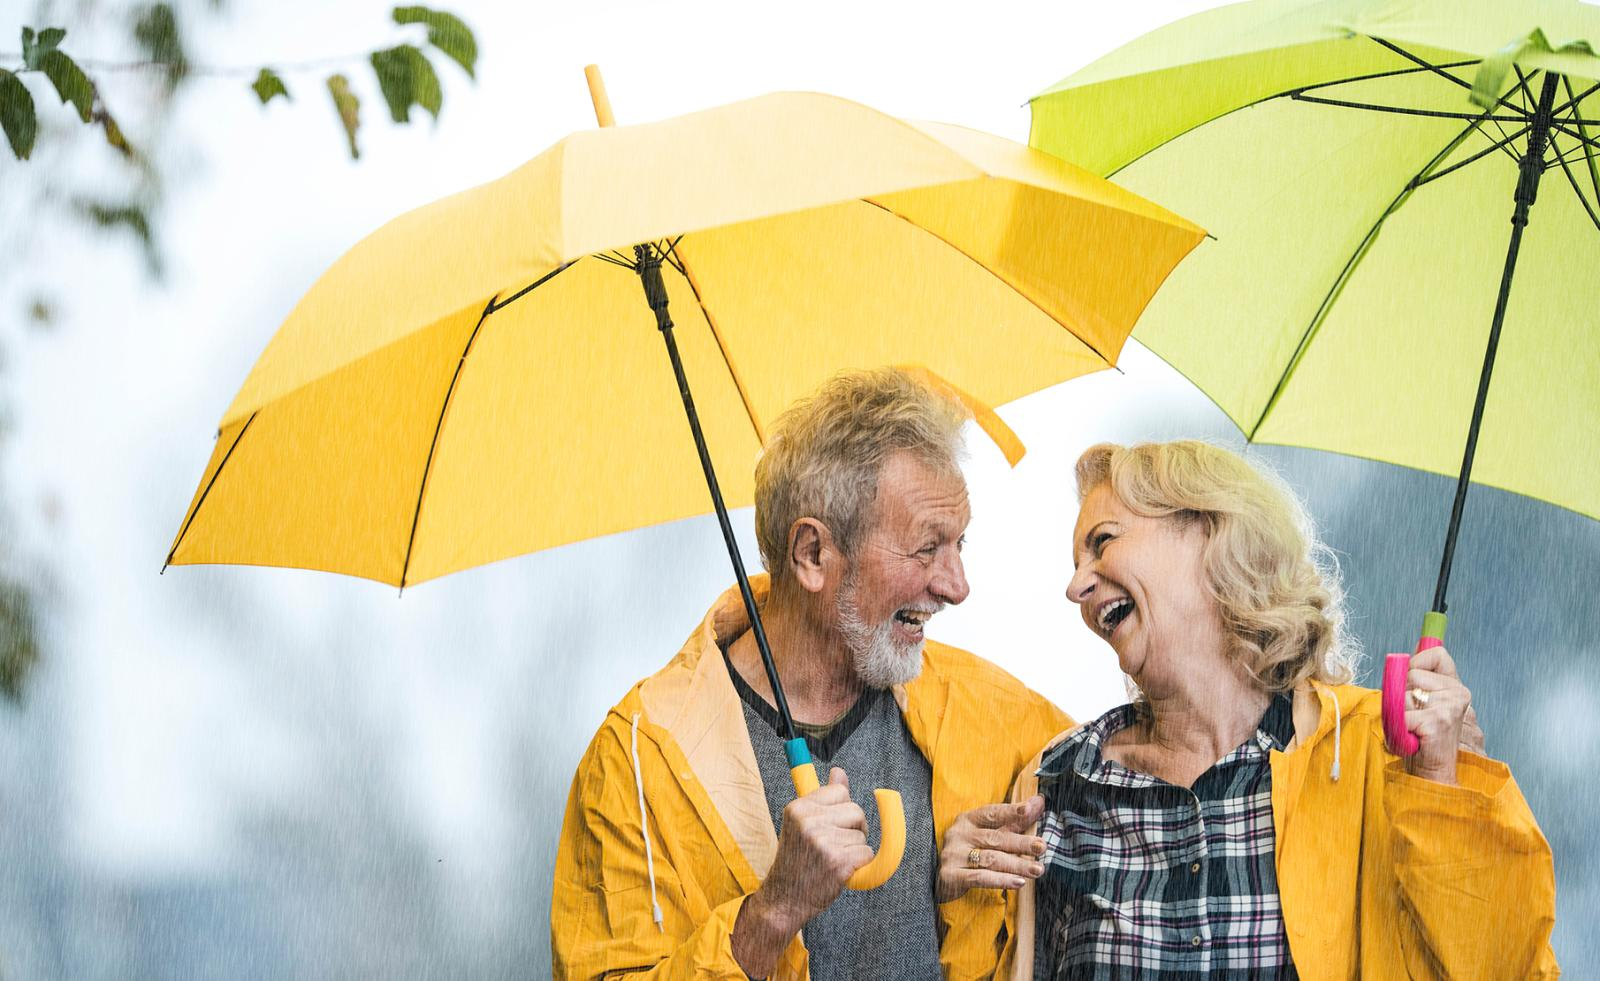 A senior couple laughs in the rain, with umbrellas and bright yellow raincoats, and enjoy the moment.